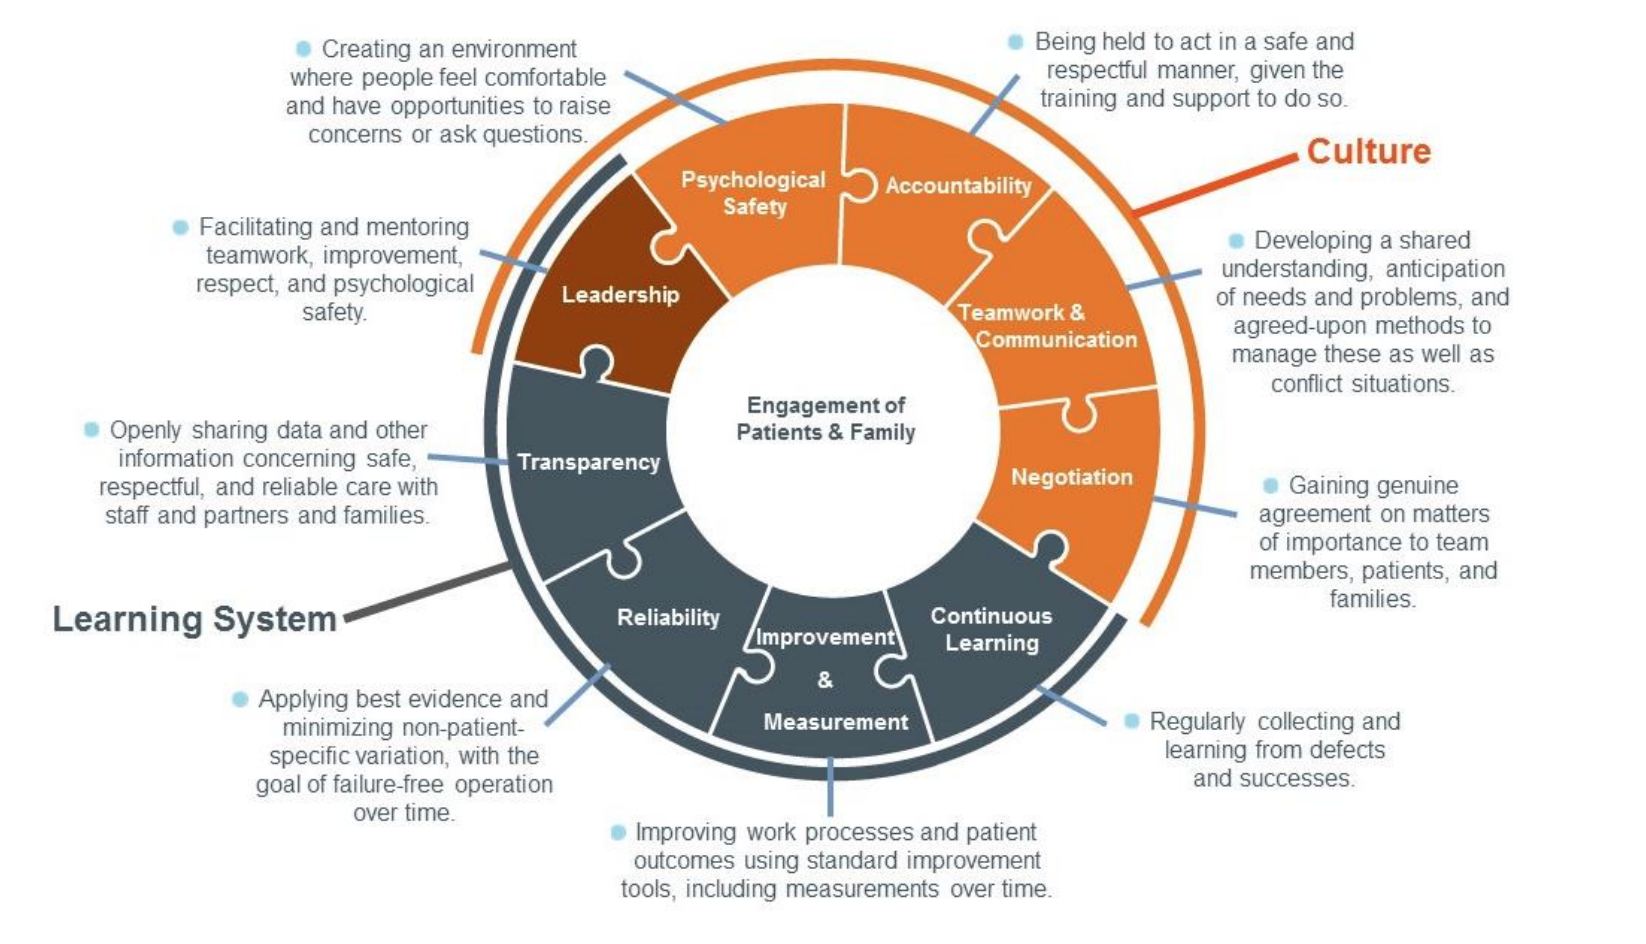 <b>Framework for Safe, Reliable, and Effective Care.</b>Source: Frankel A, Haraden C, Federico F, Lenoci-Edwards J. A Framework for Safe, Reliable, and Effective Care. White Paper. Cambridge, MA: Institute for Healthcare Improvement and Safe & Reliable Healthcare; 2017.